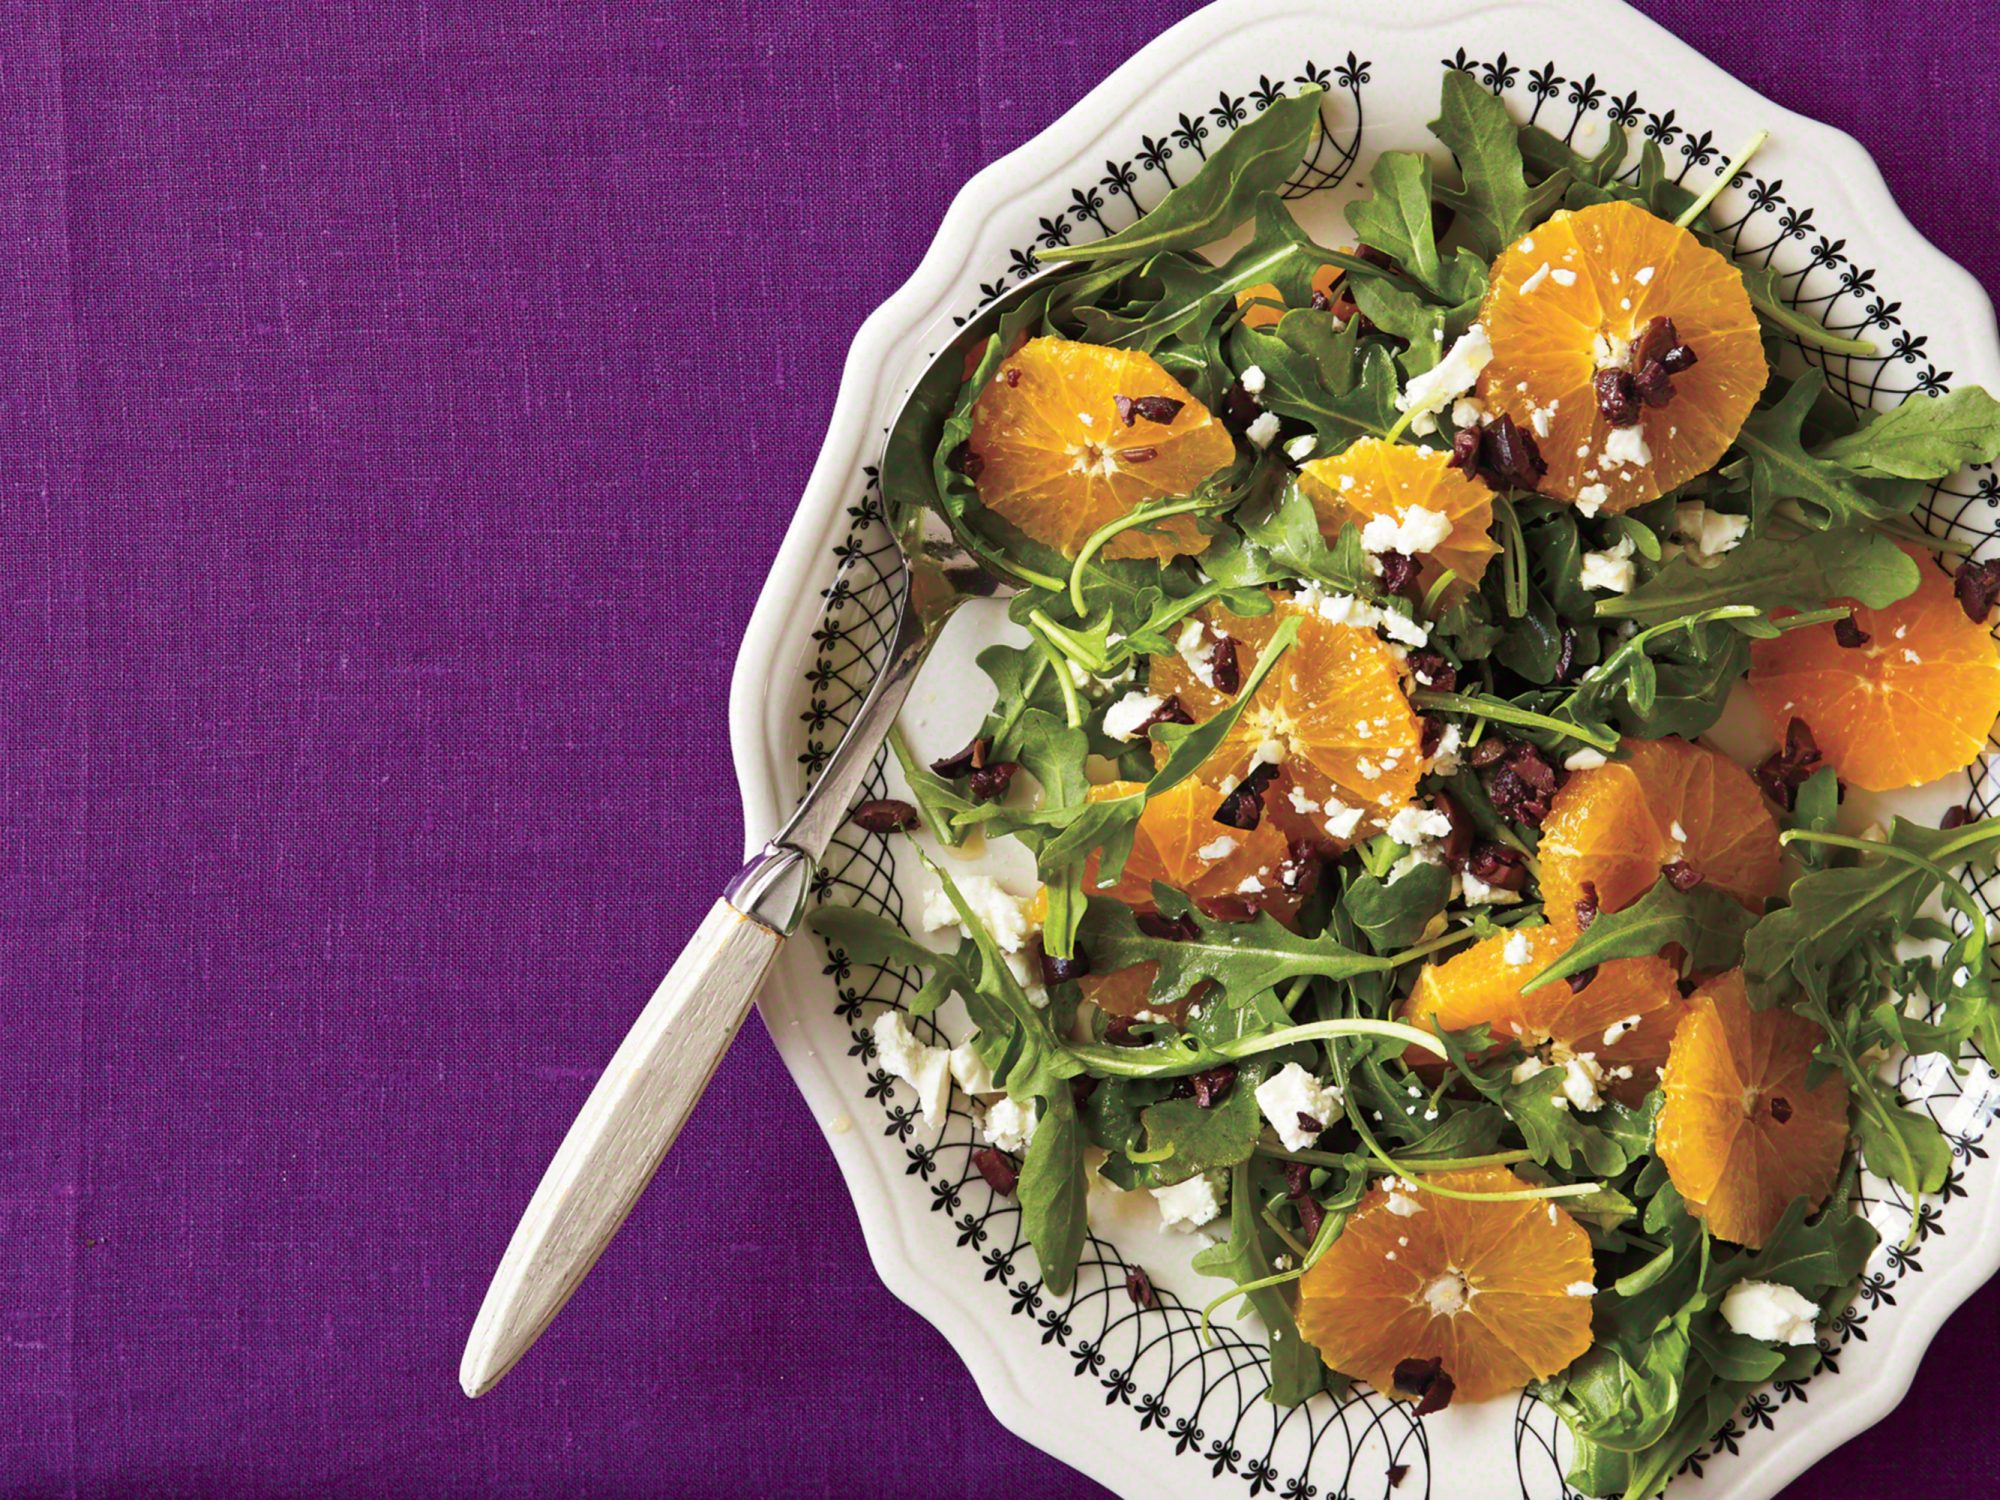 Orange-and-Black Salad Platter